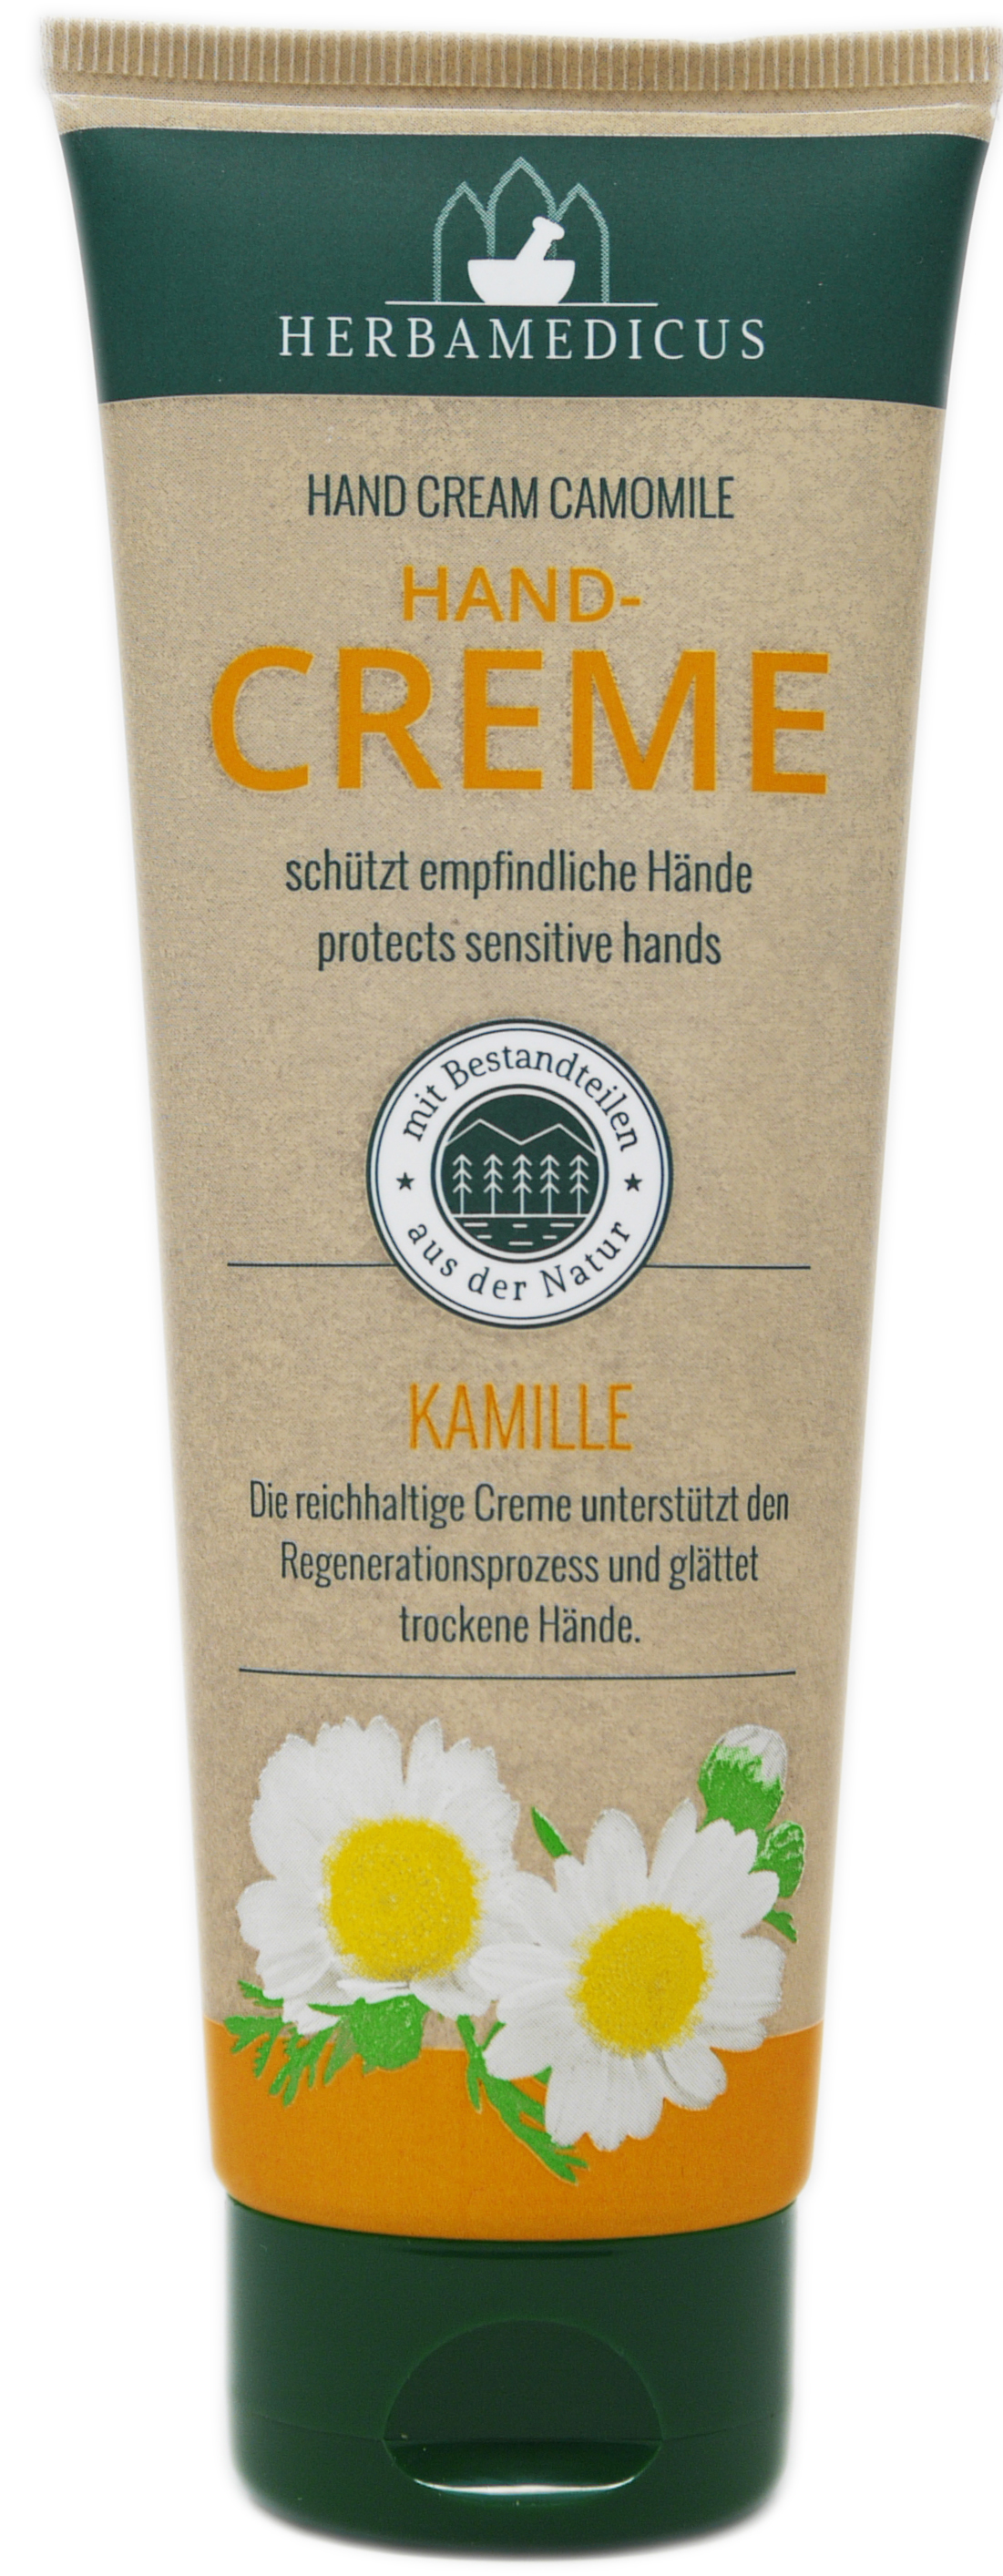 01845 - hand cream camomile 125 ml